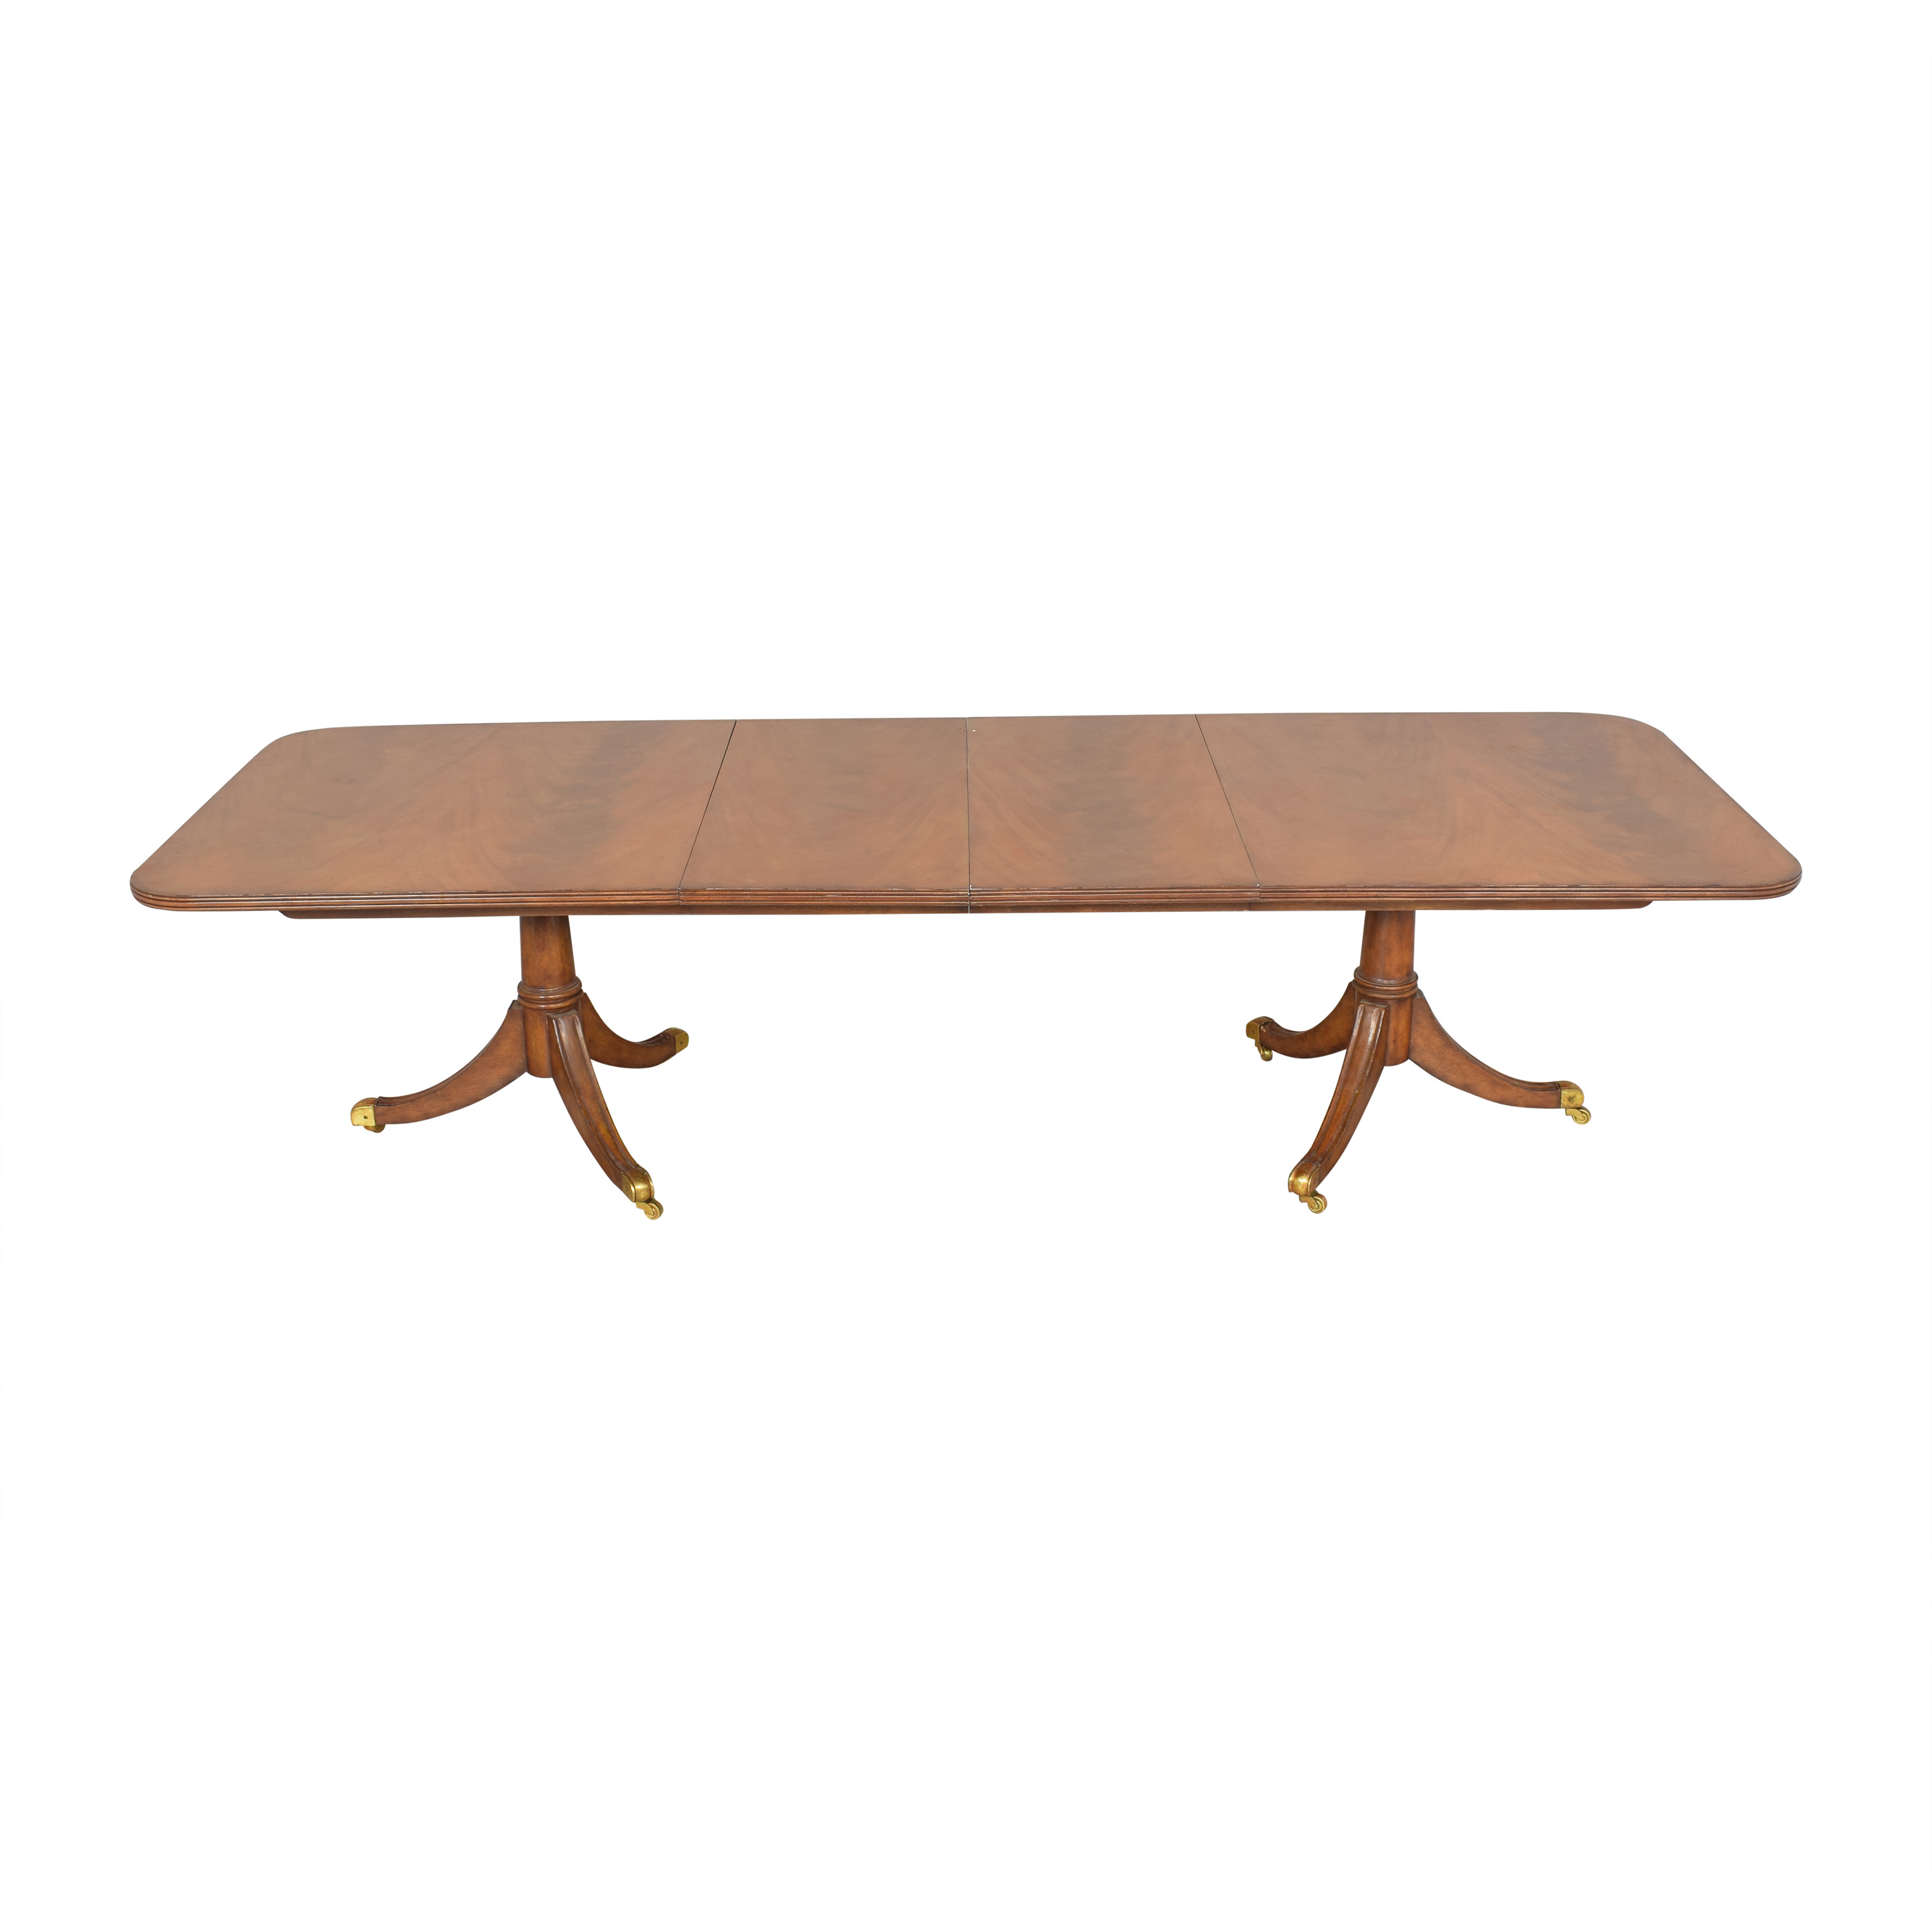 Maitland-Smith Maitland-Smith Double Pedestal Extendable Dining Table for sale